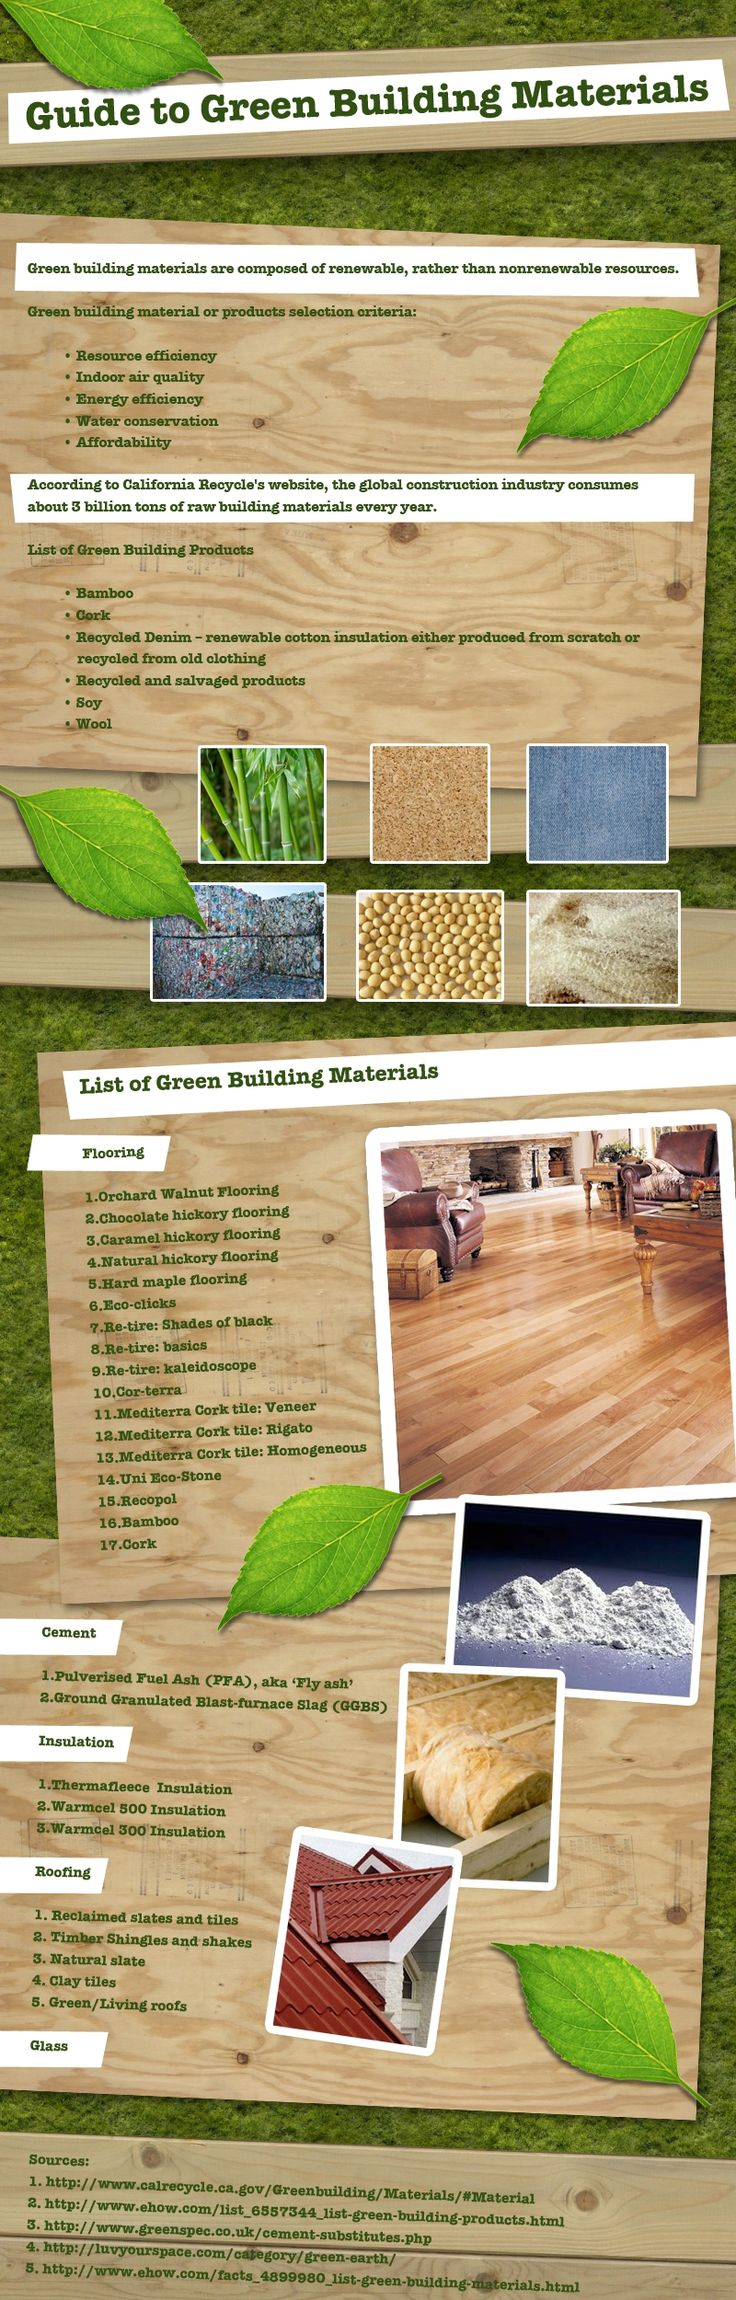 Sustainable building materials energy systems for Eco building supplies